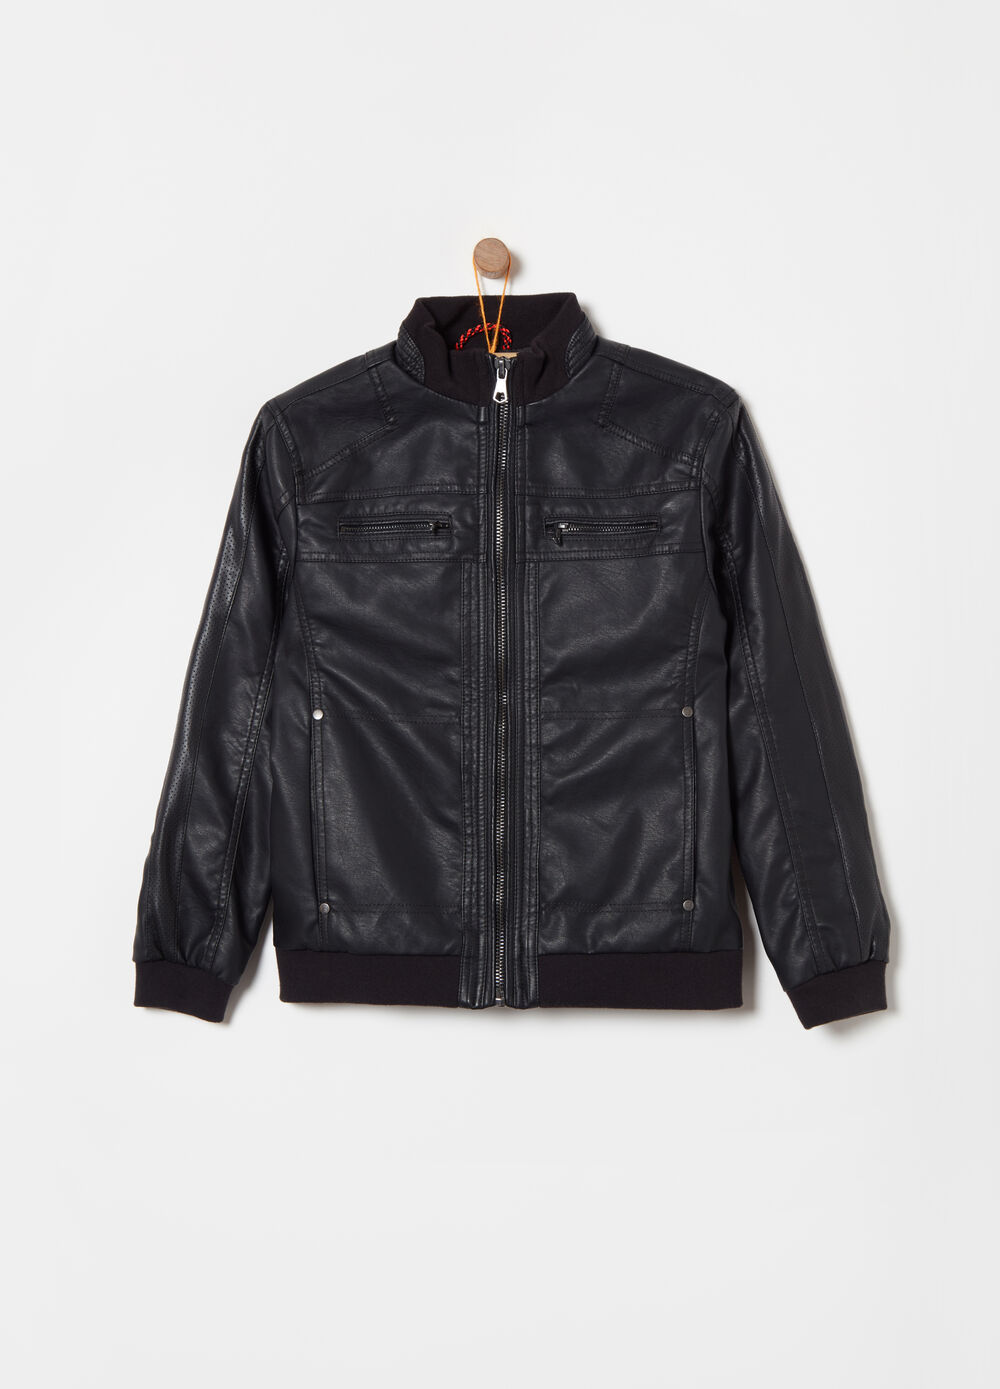 Leather-look jacket with openwork details